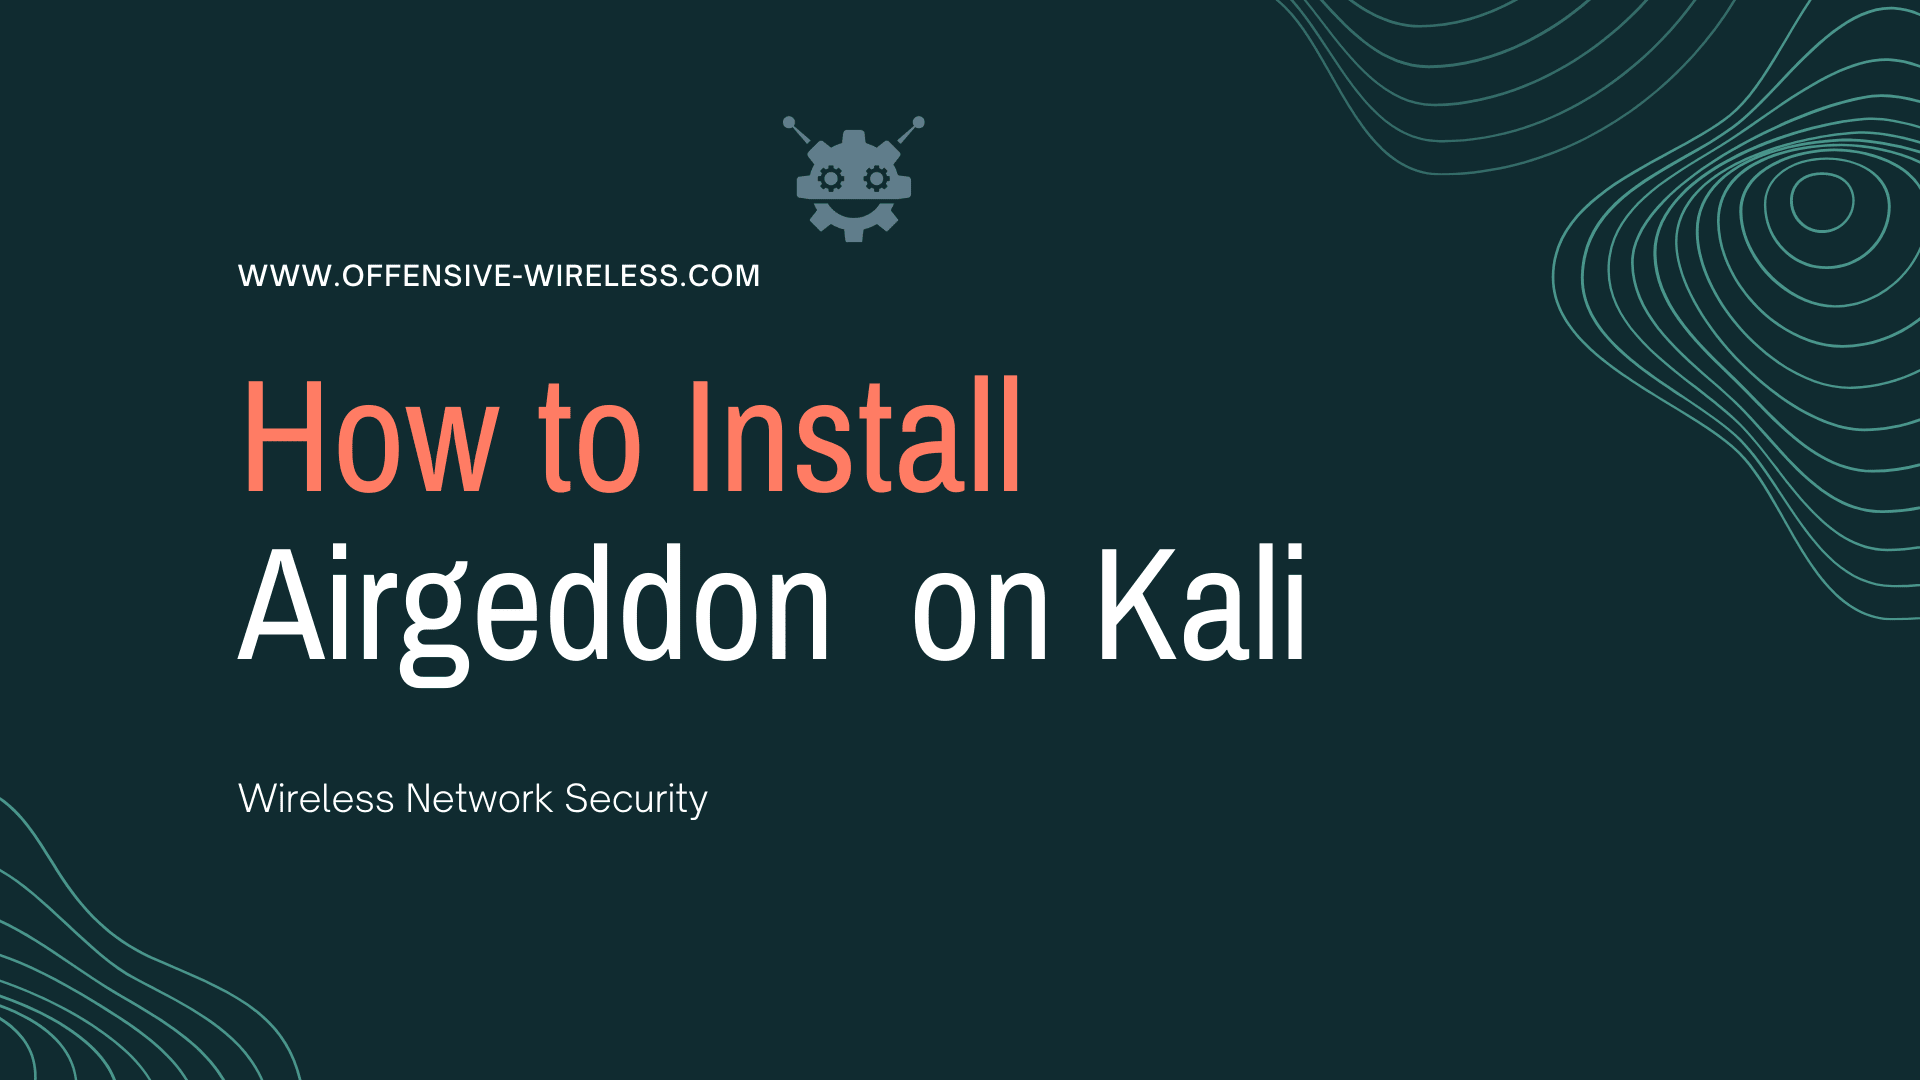 How to Install Airgeddon